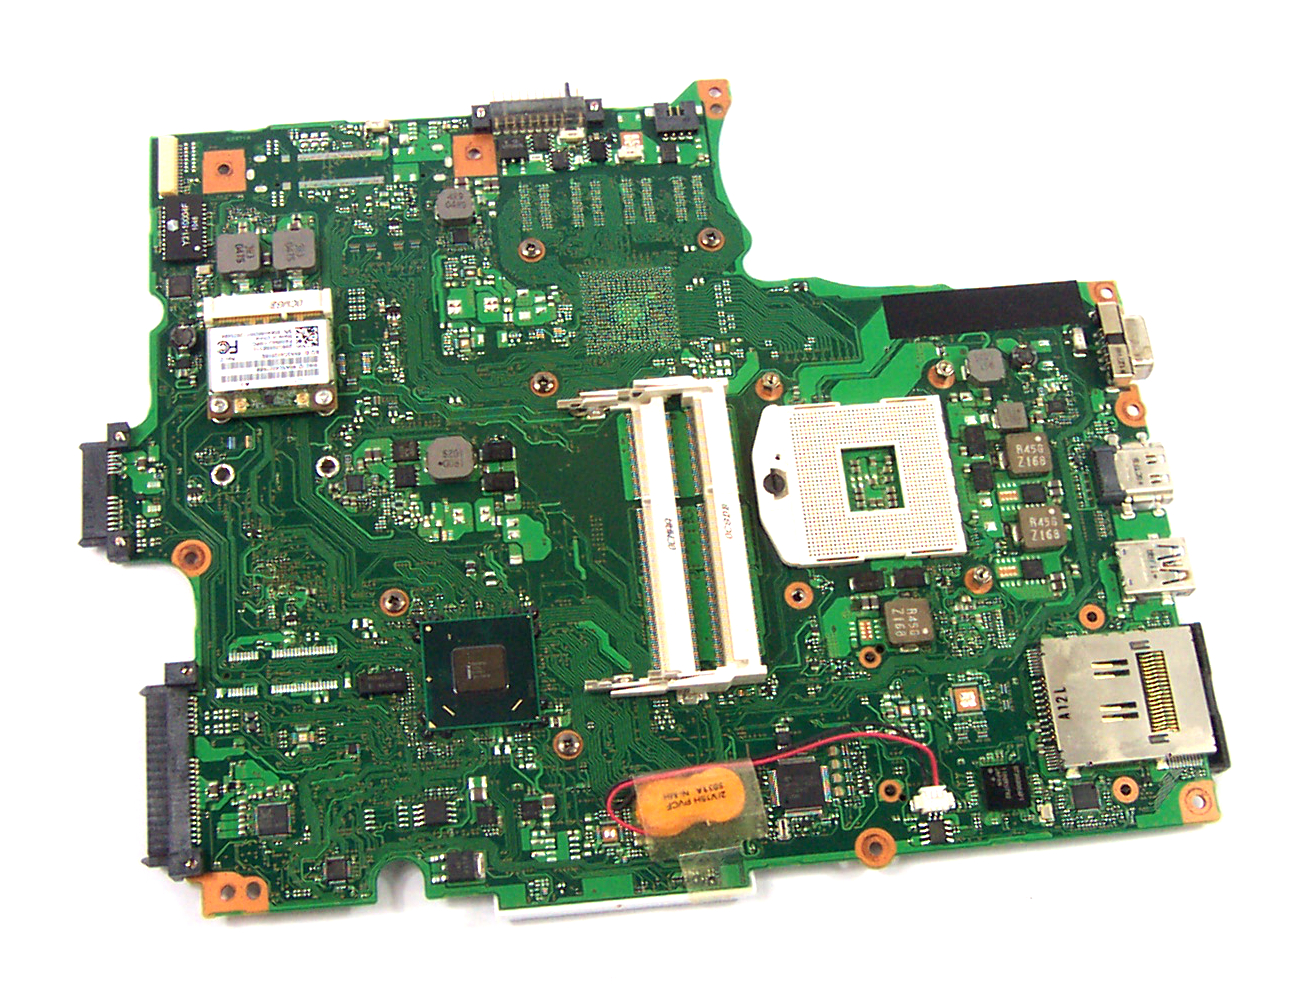 Toshiba FAL5SY2 A2971A Satellite R850-10H Socket 989 Laptop Motherboard